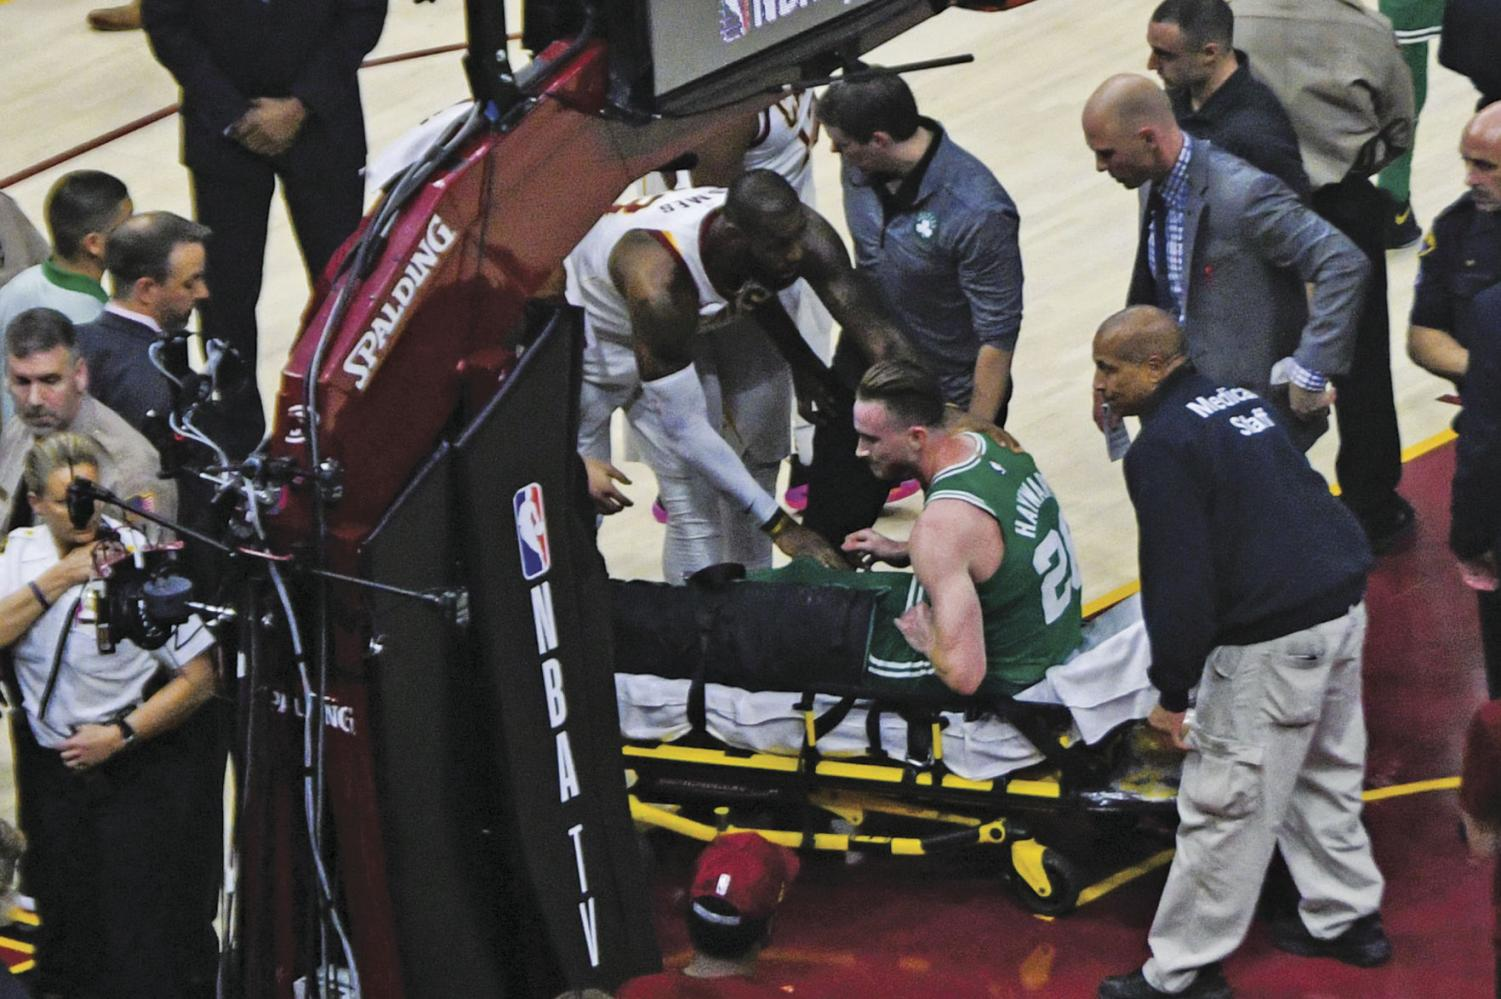 Hayward suffered a season-ending ankle injury five minutes into the season